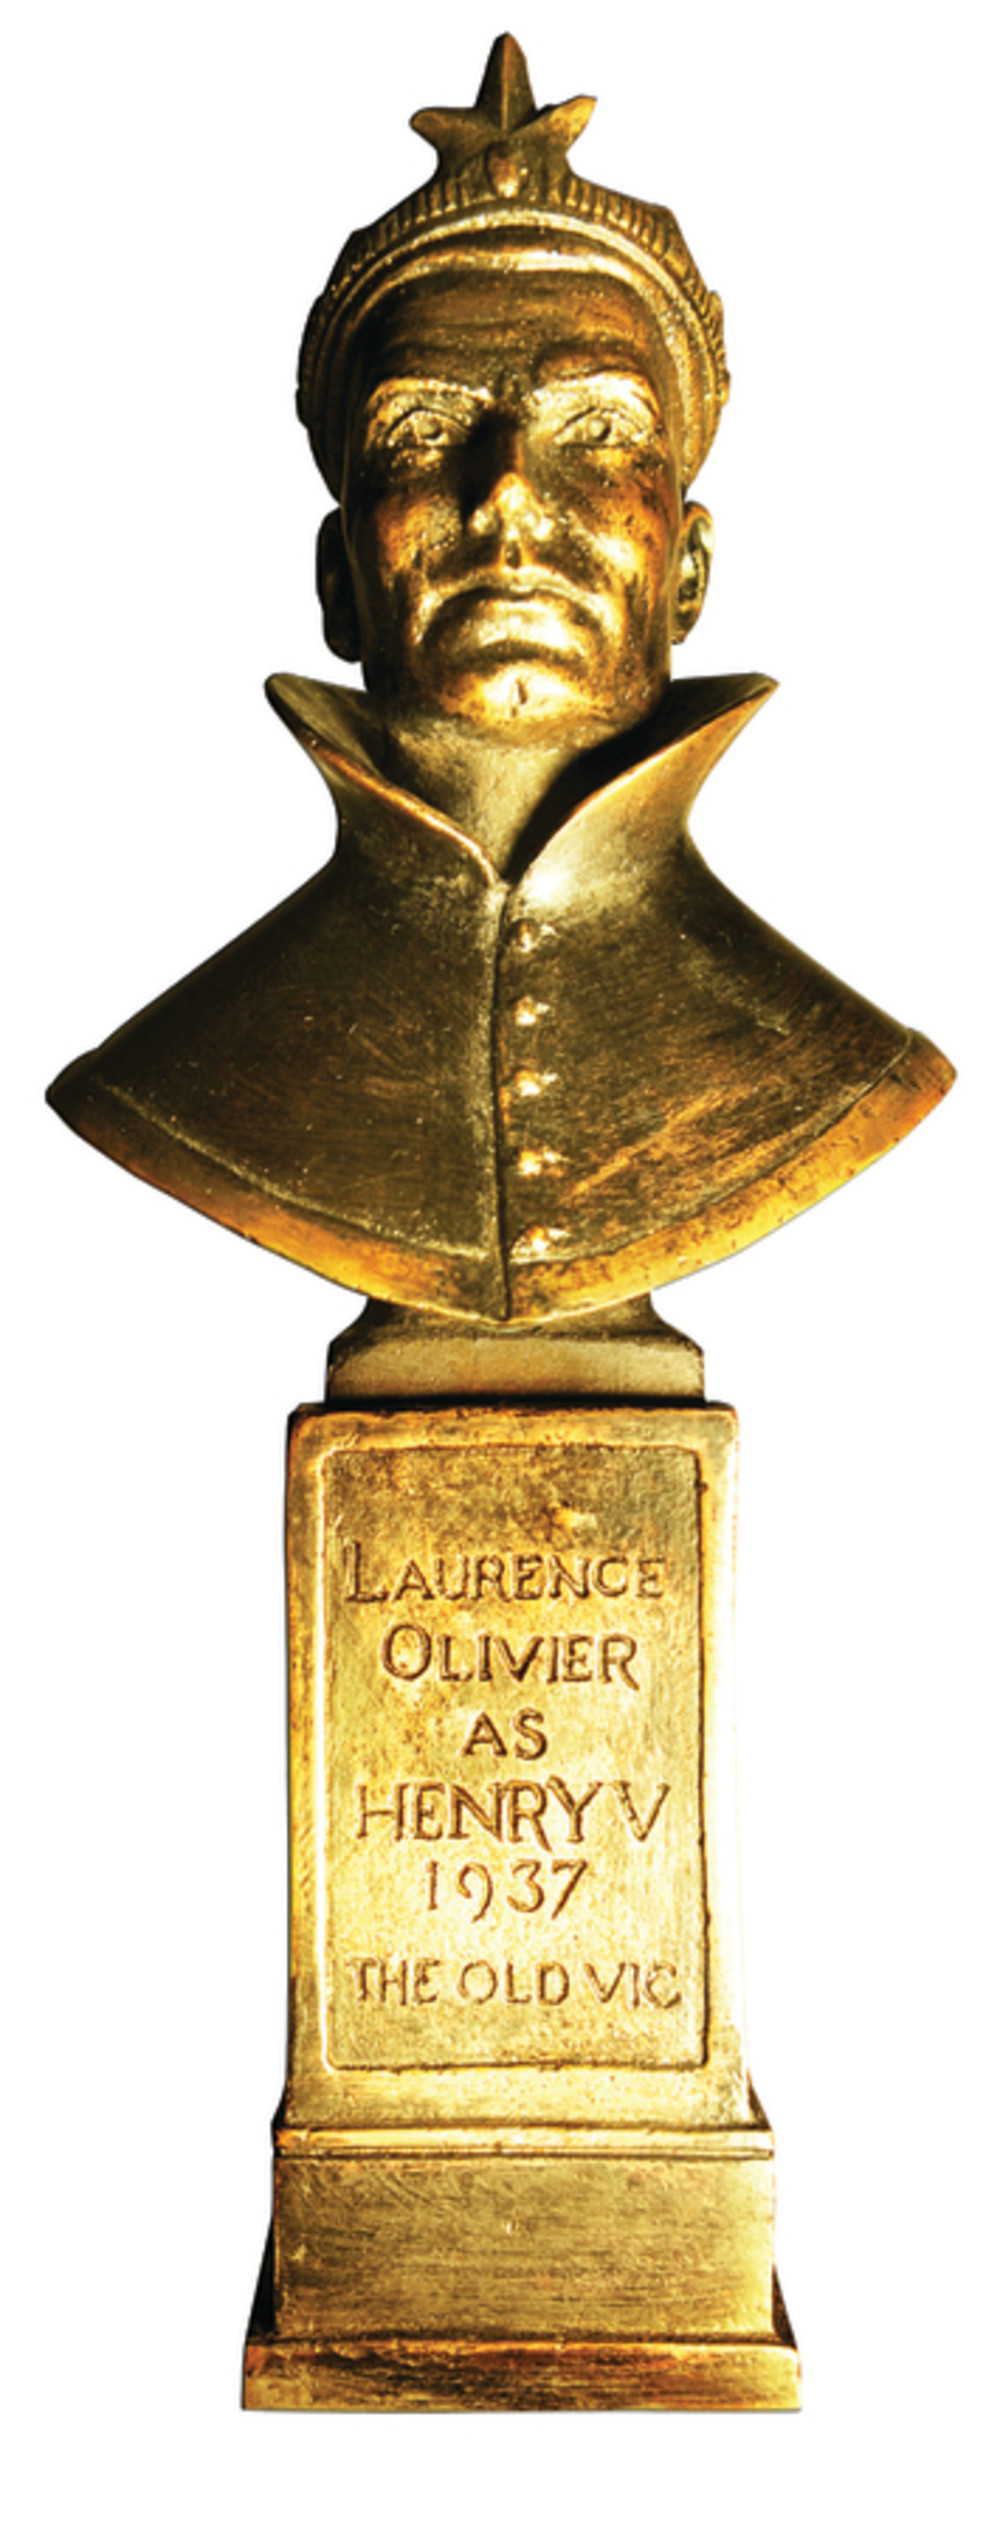 West End Auto >> Olivier Awards Brand Resources and Statue